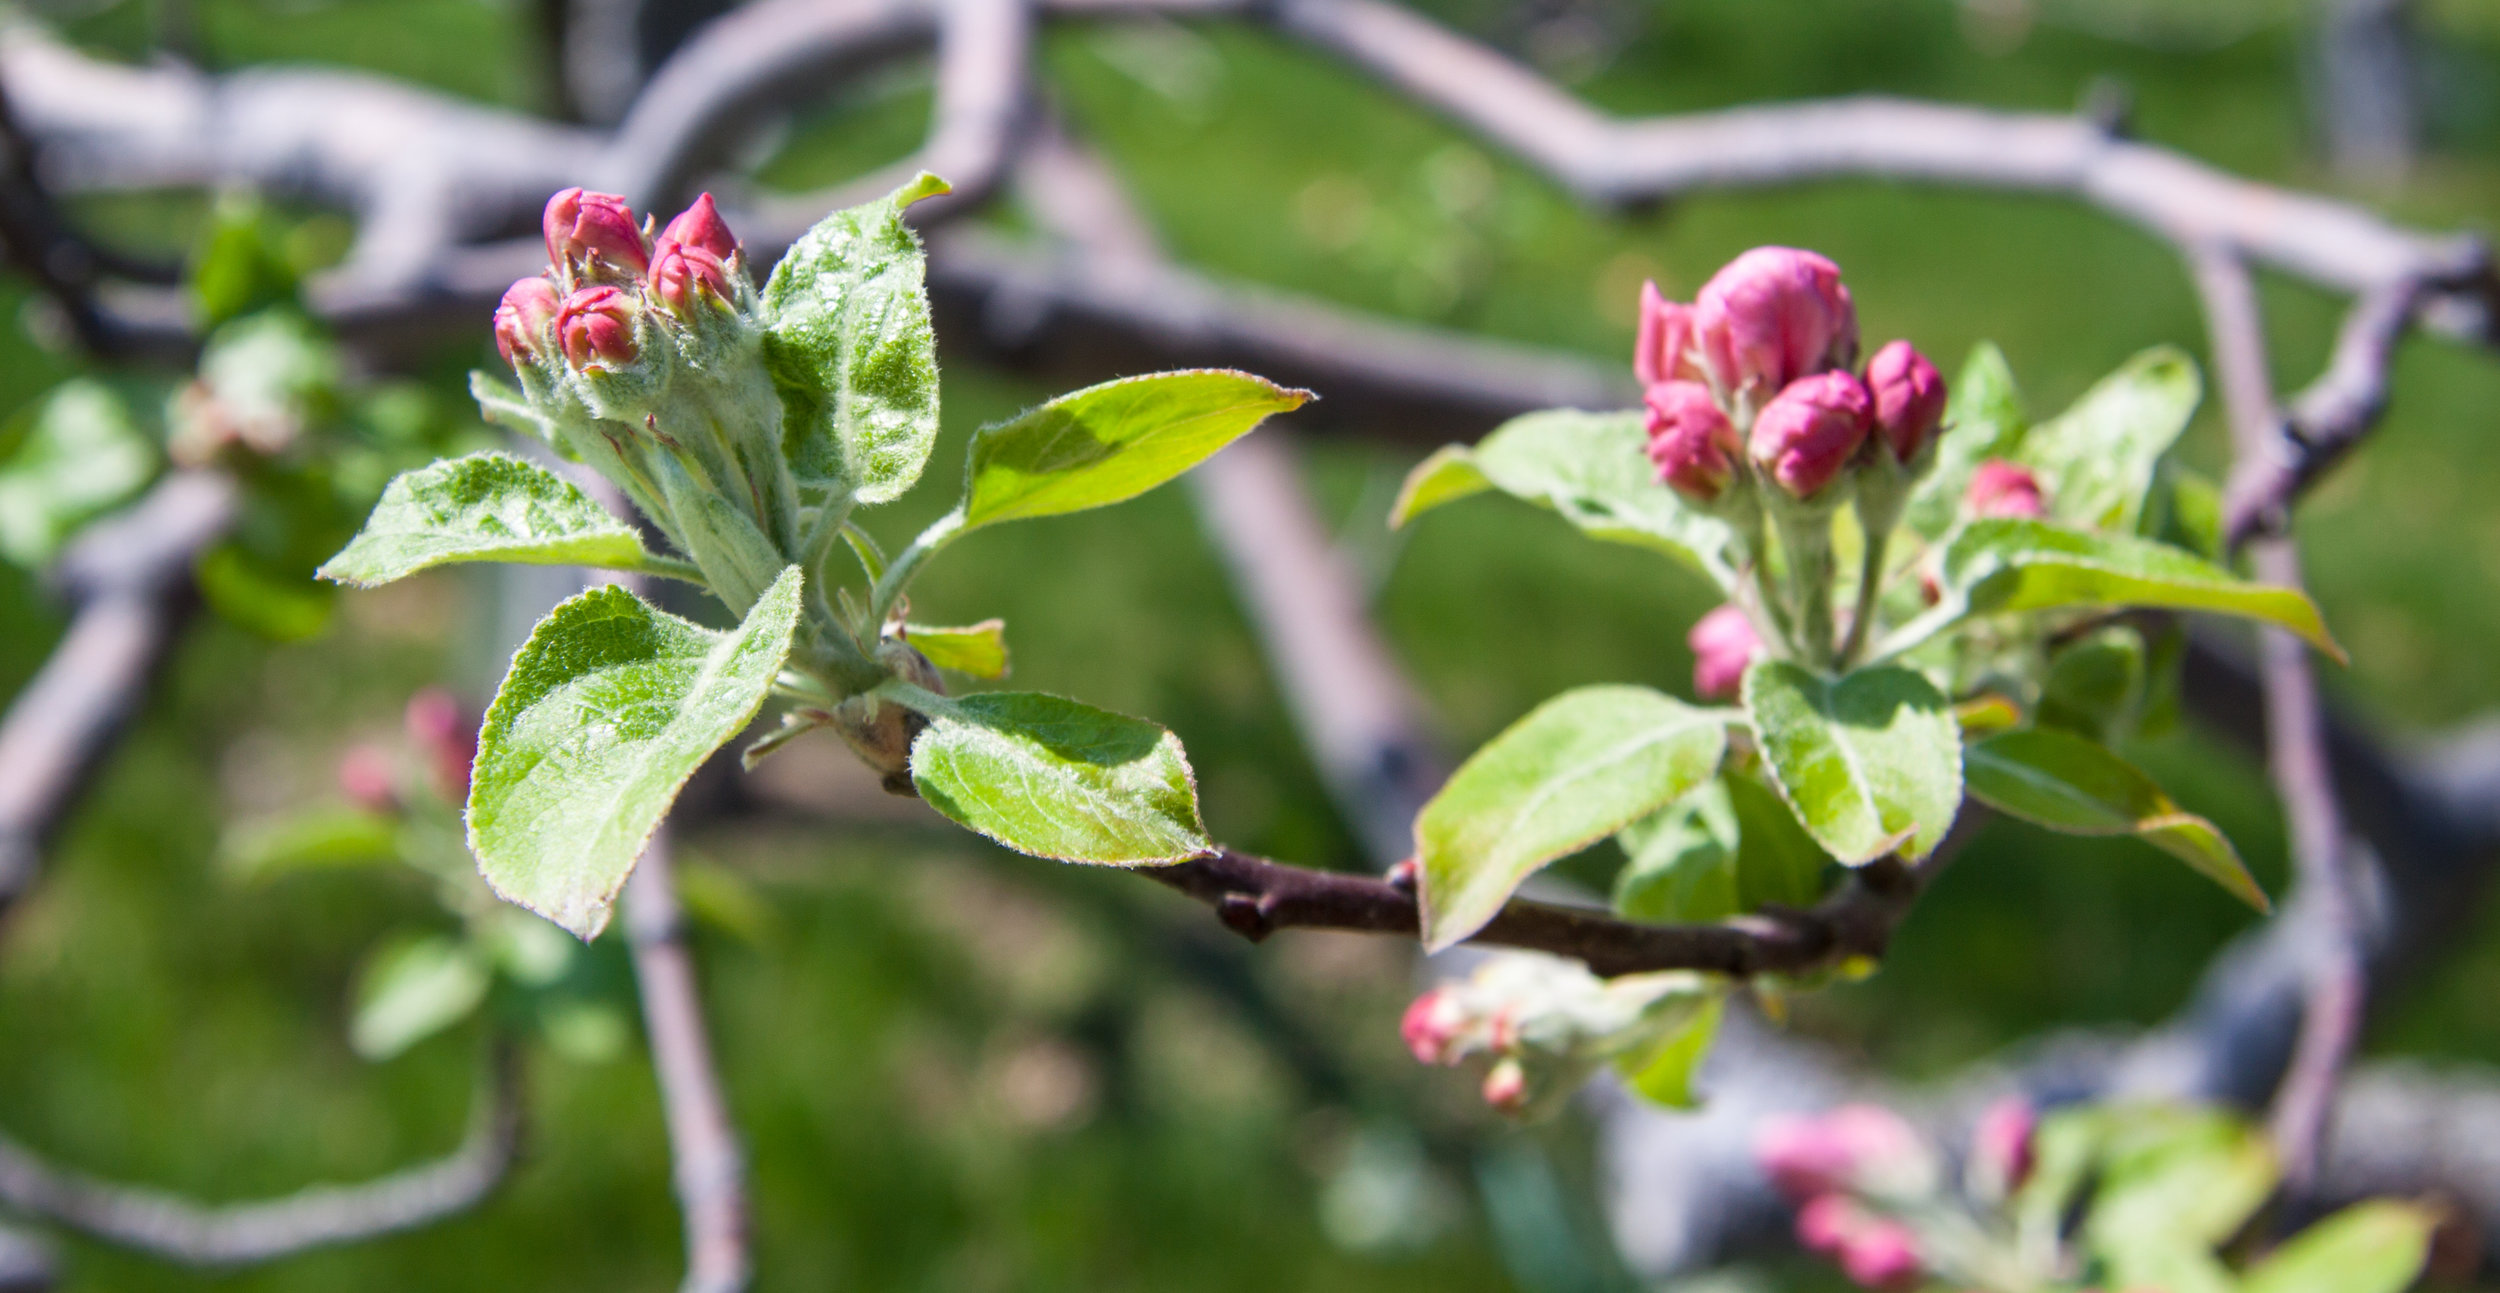 The King Bloom is encircled by buds.